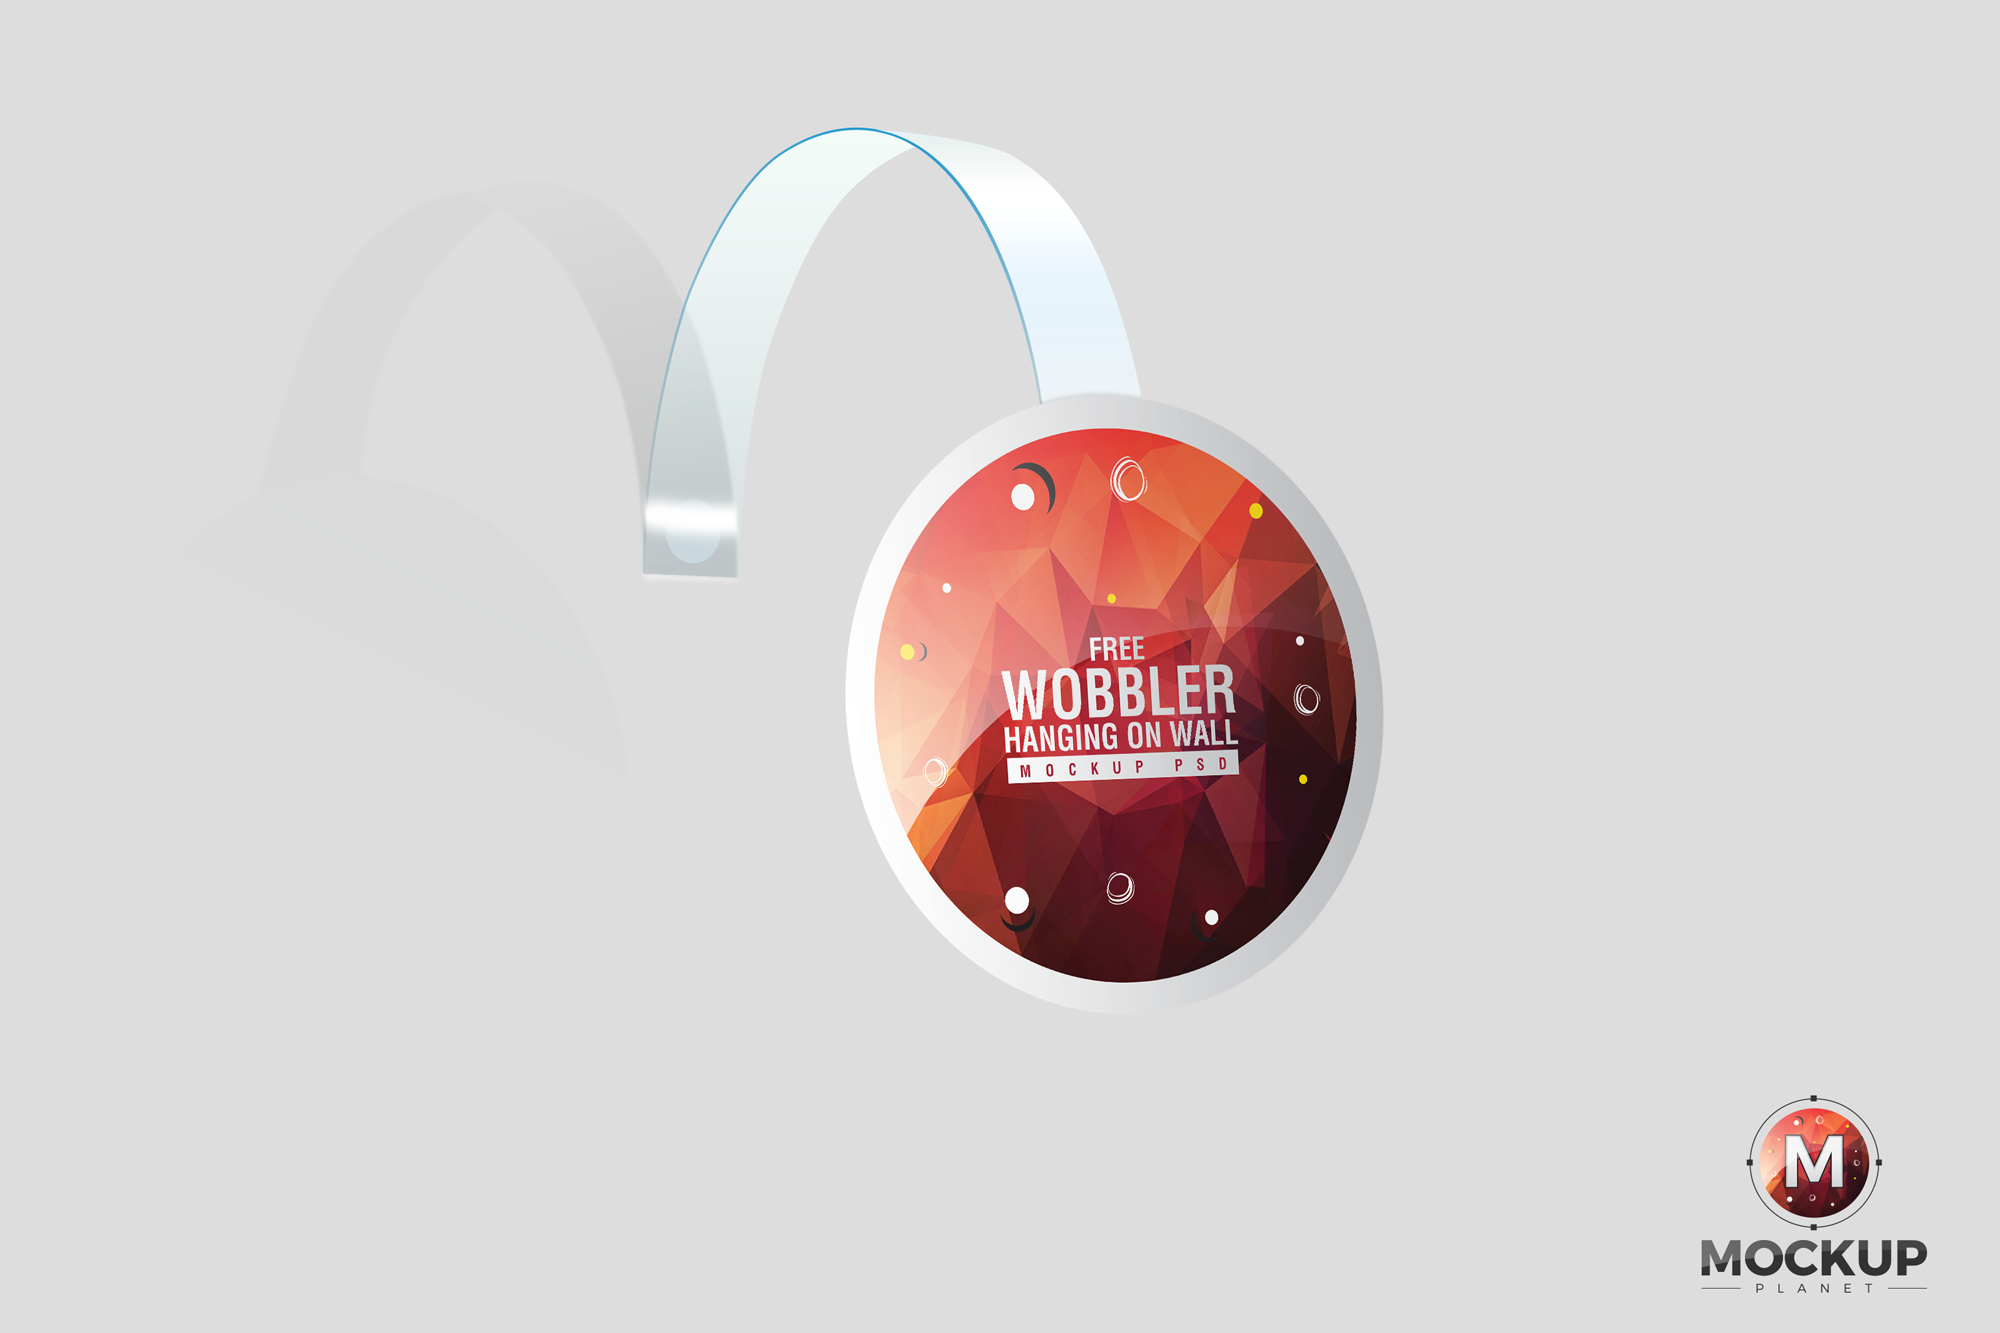 Free-Wobbler-Hanging-on-Wall-Mockup-PSD-1